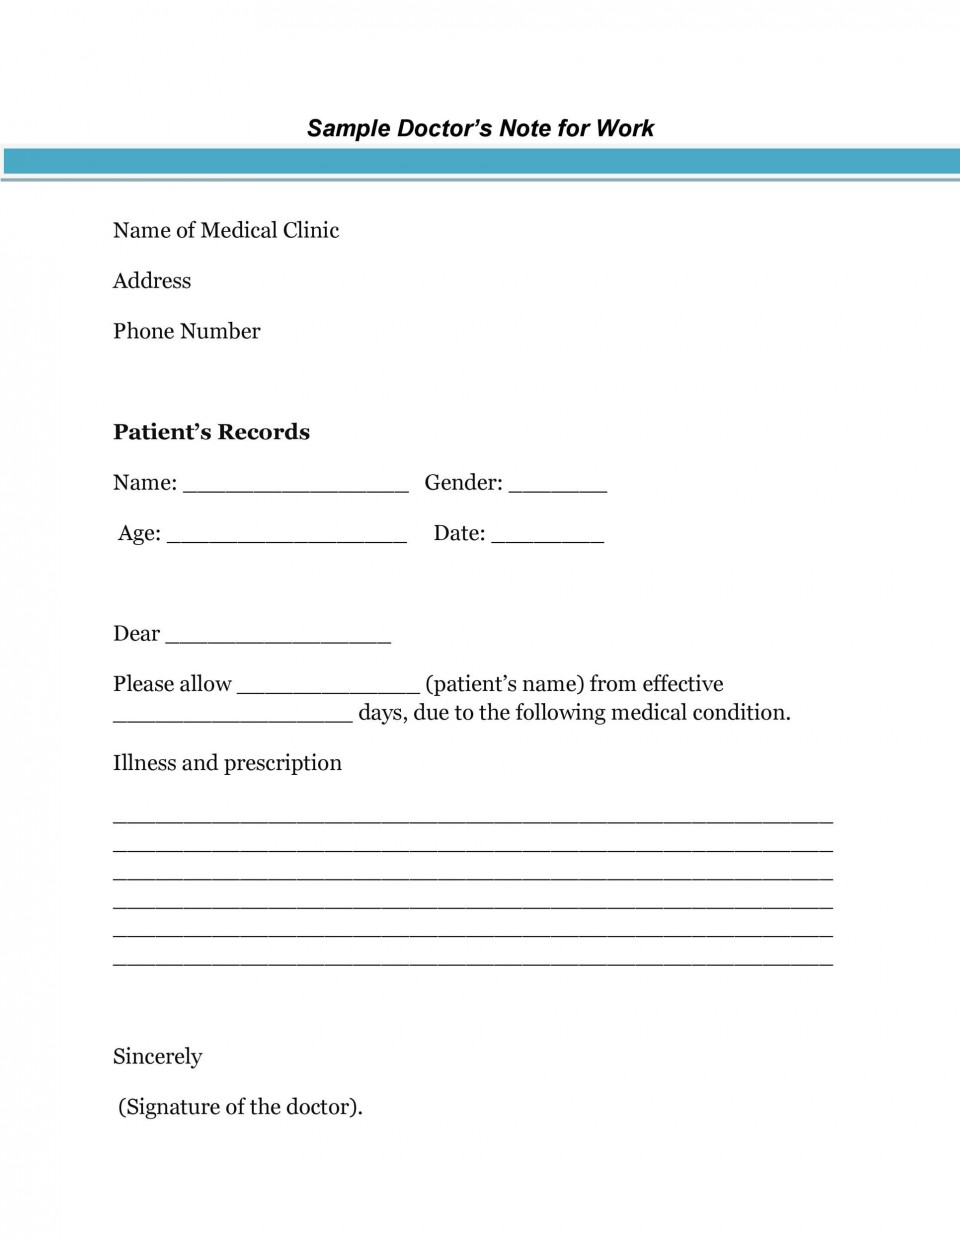 003 Awful Urgent Care Doctor Note Template High Resolution  Sample Fake Doctor' Printable960